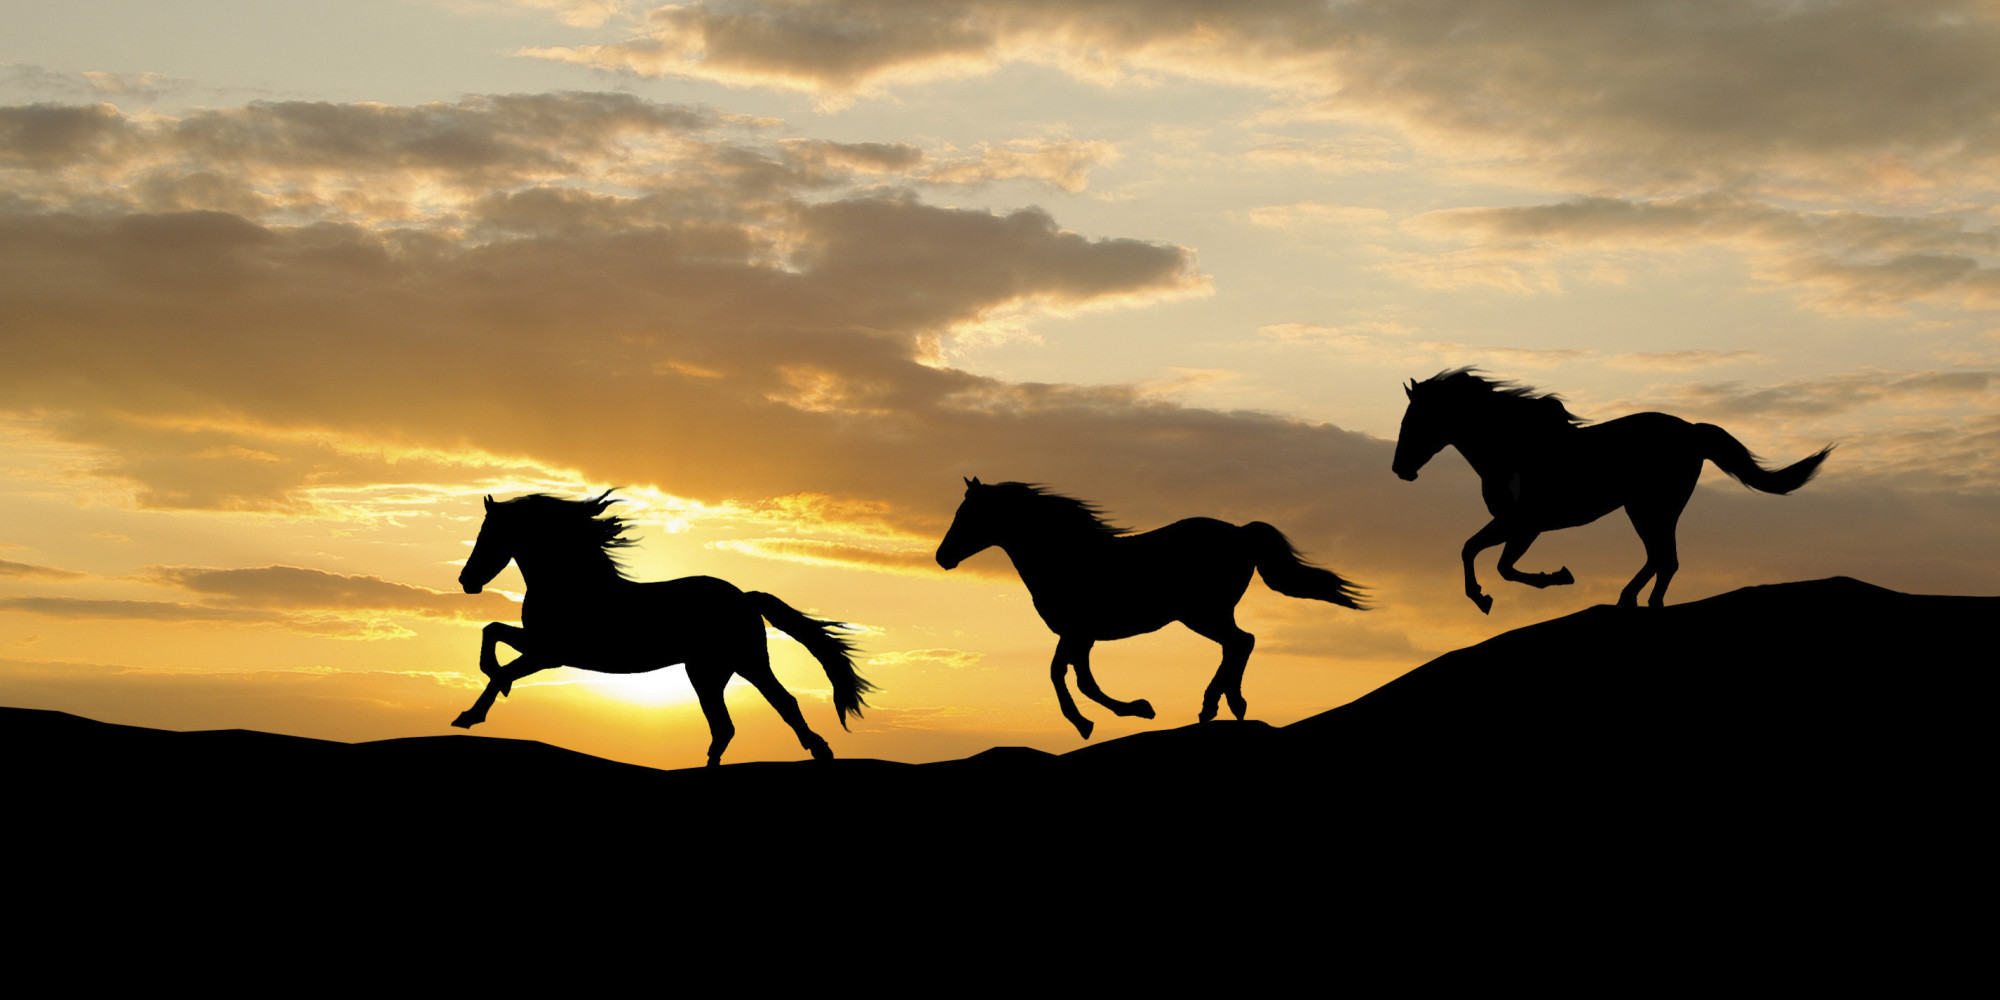 horses across sunset